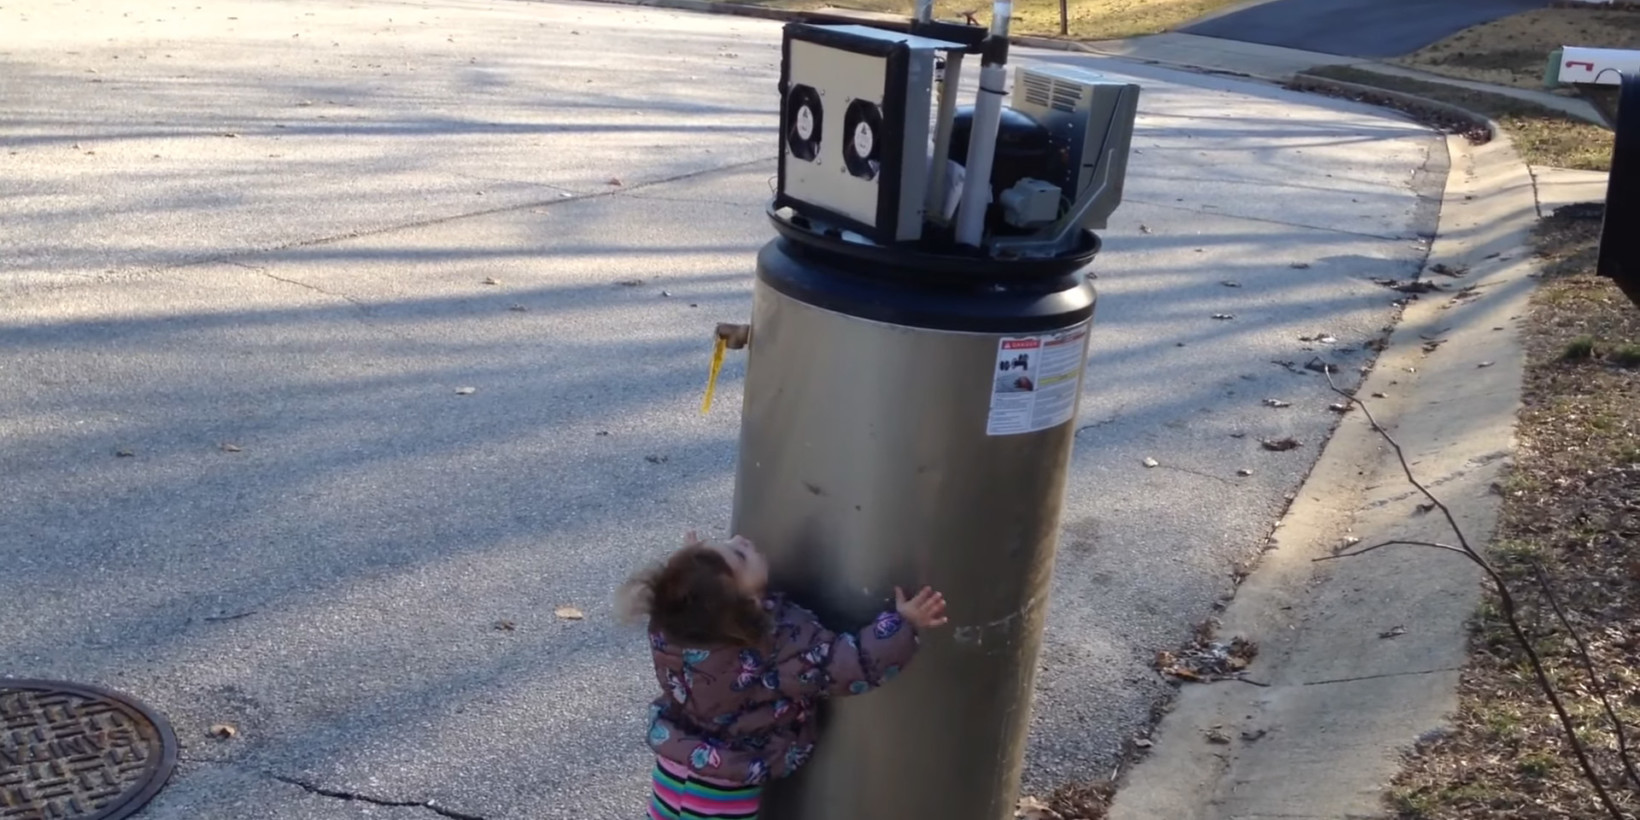 Let's Hope We Get Along with Robots as Well as this Kid and a Water Heater